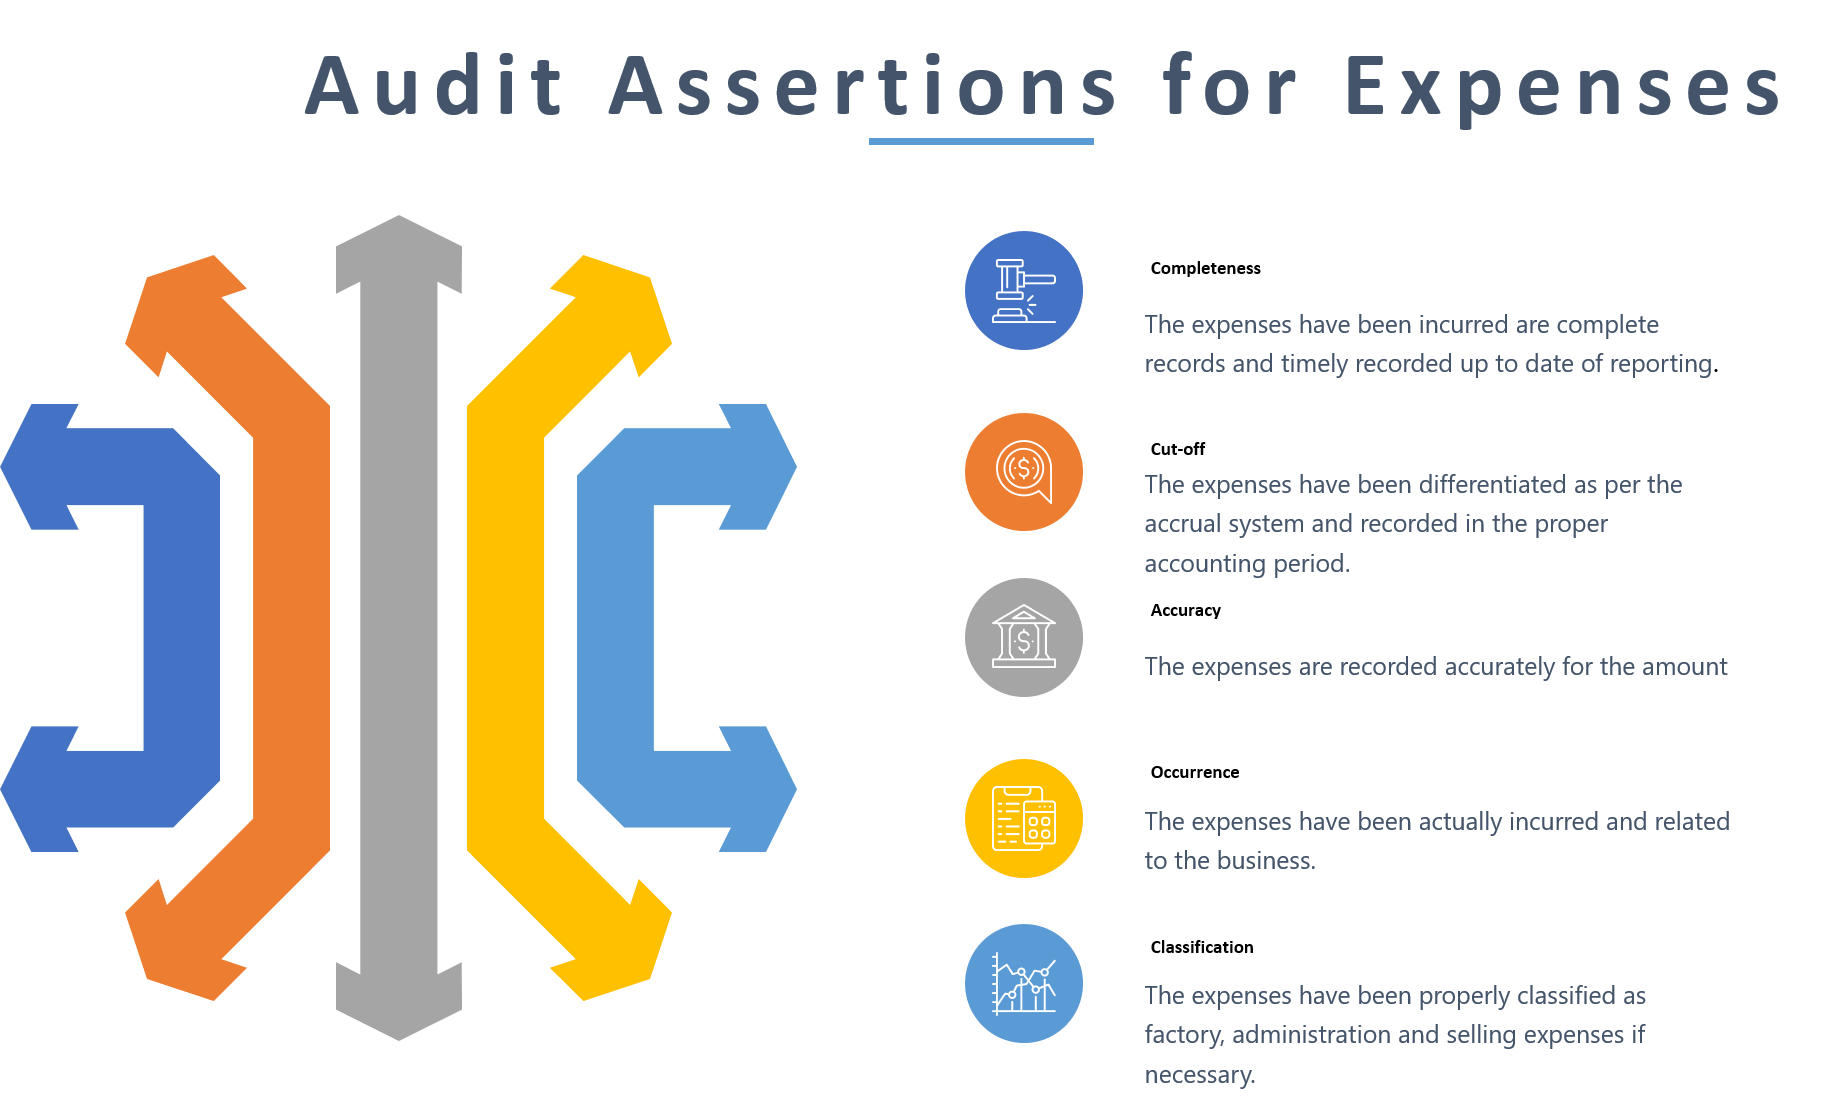 Audit Expenses: Assertions, Risks and Procedures ...